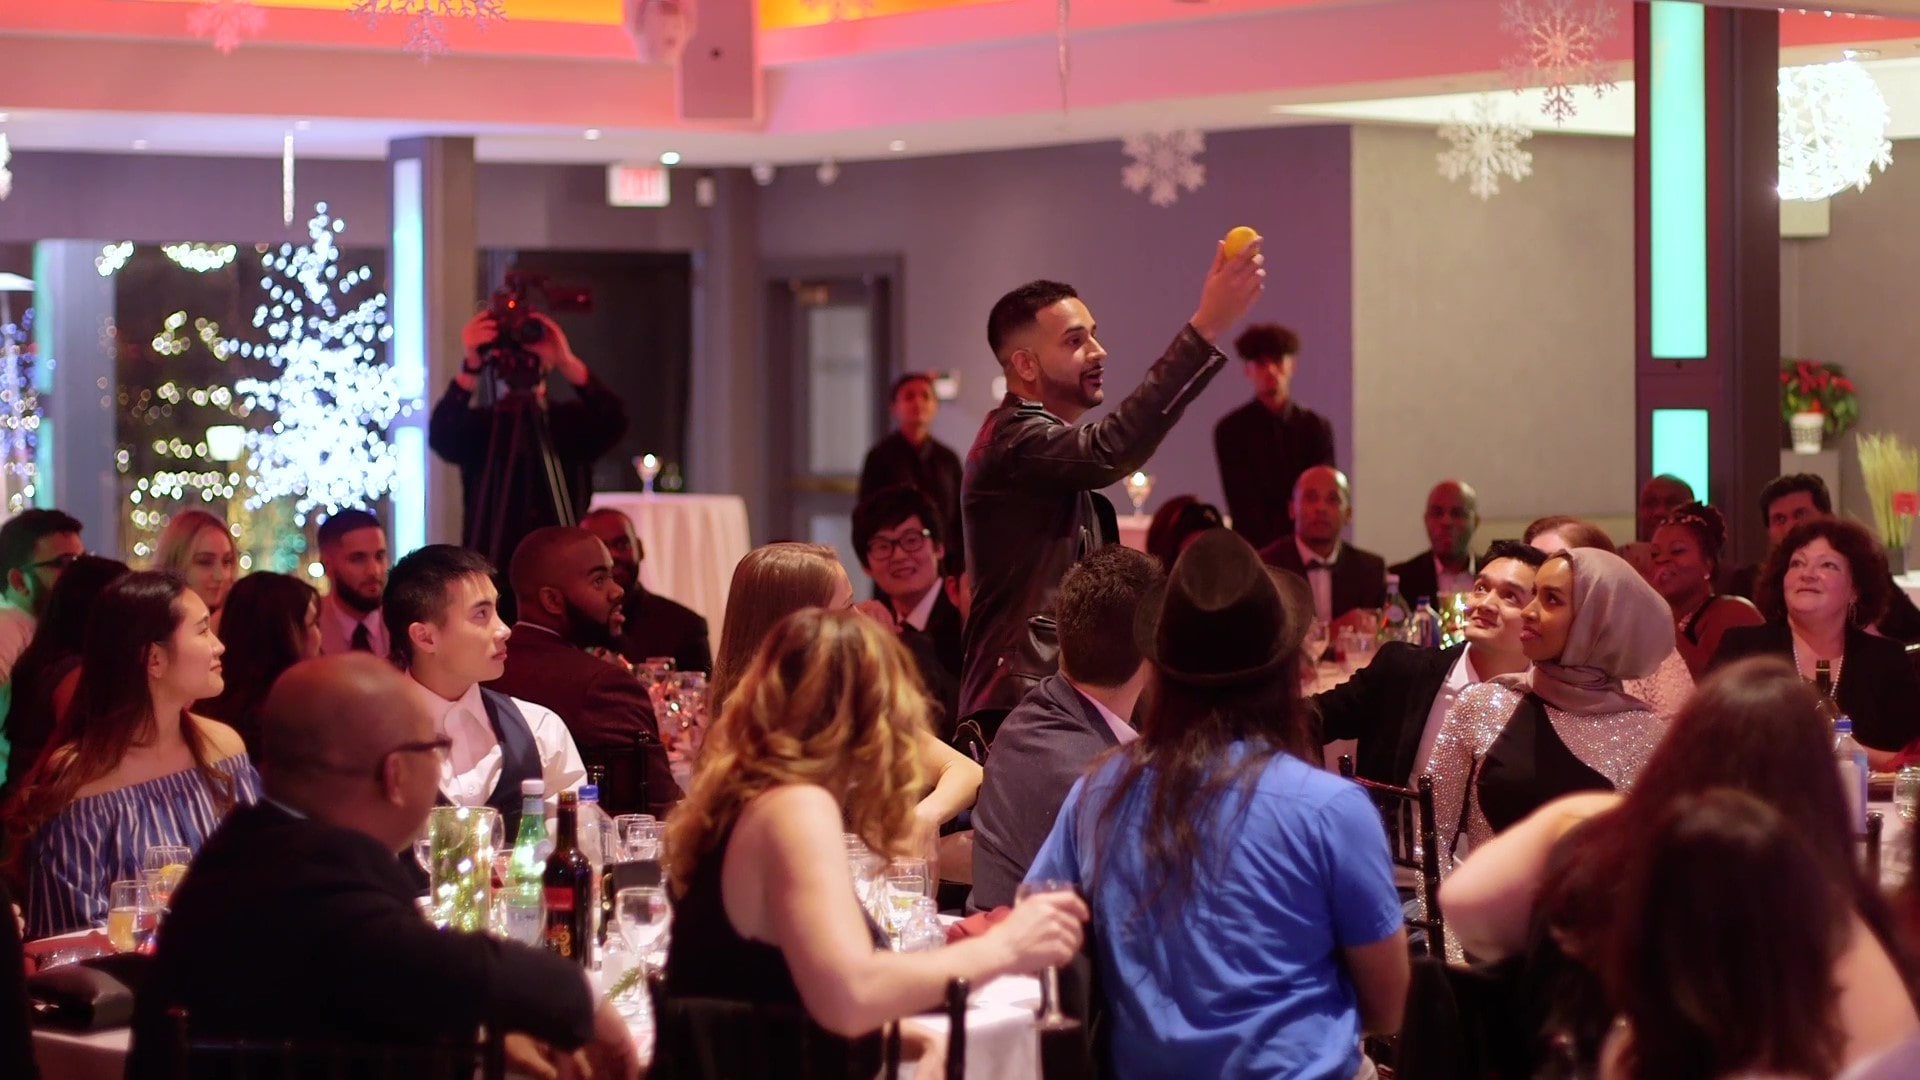 Toronto magician Durgy Spade performing at a banquet hall in Toronto